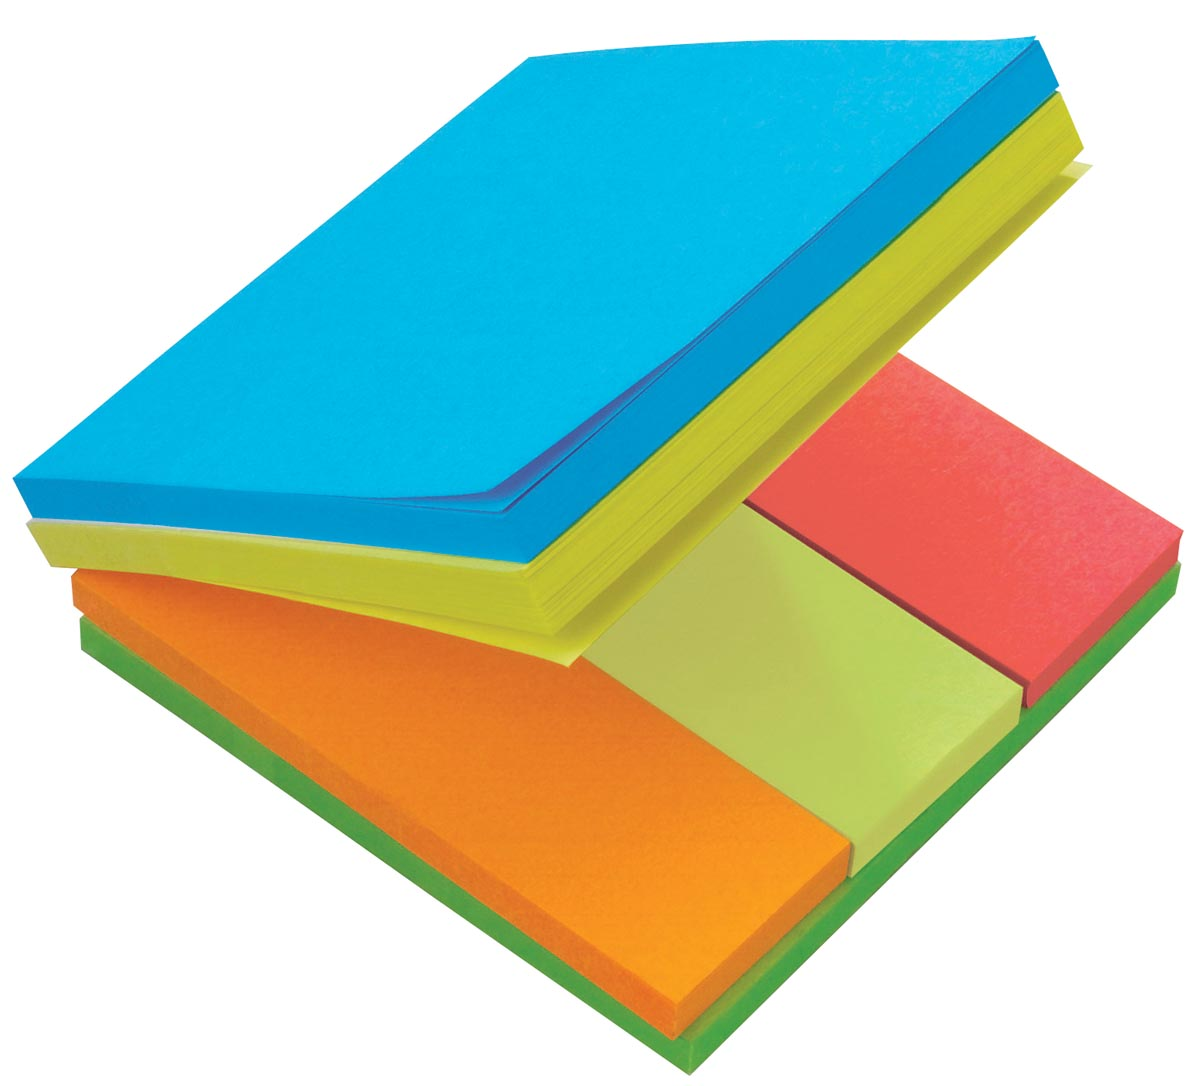 Post-it Multi Notes, kubus met geassorteerde kleuren en formaten